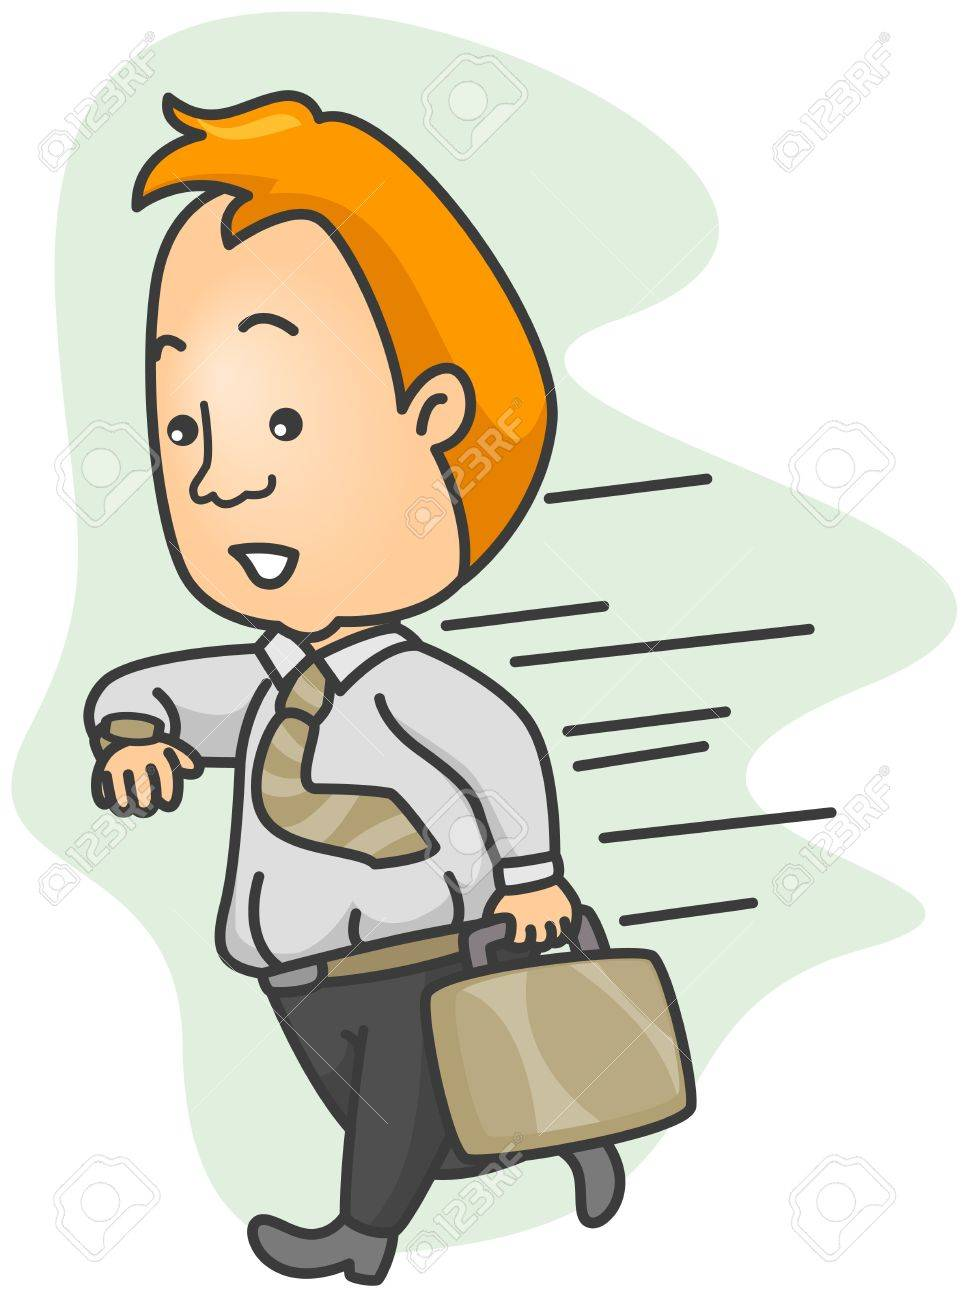 Illustration of a Man Running Late for Work Stock Photo - 8492641